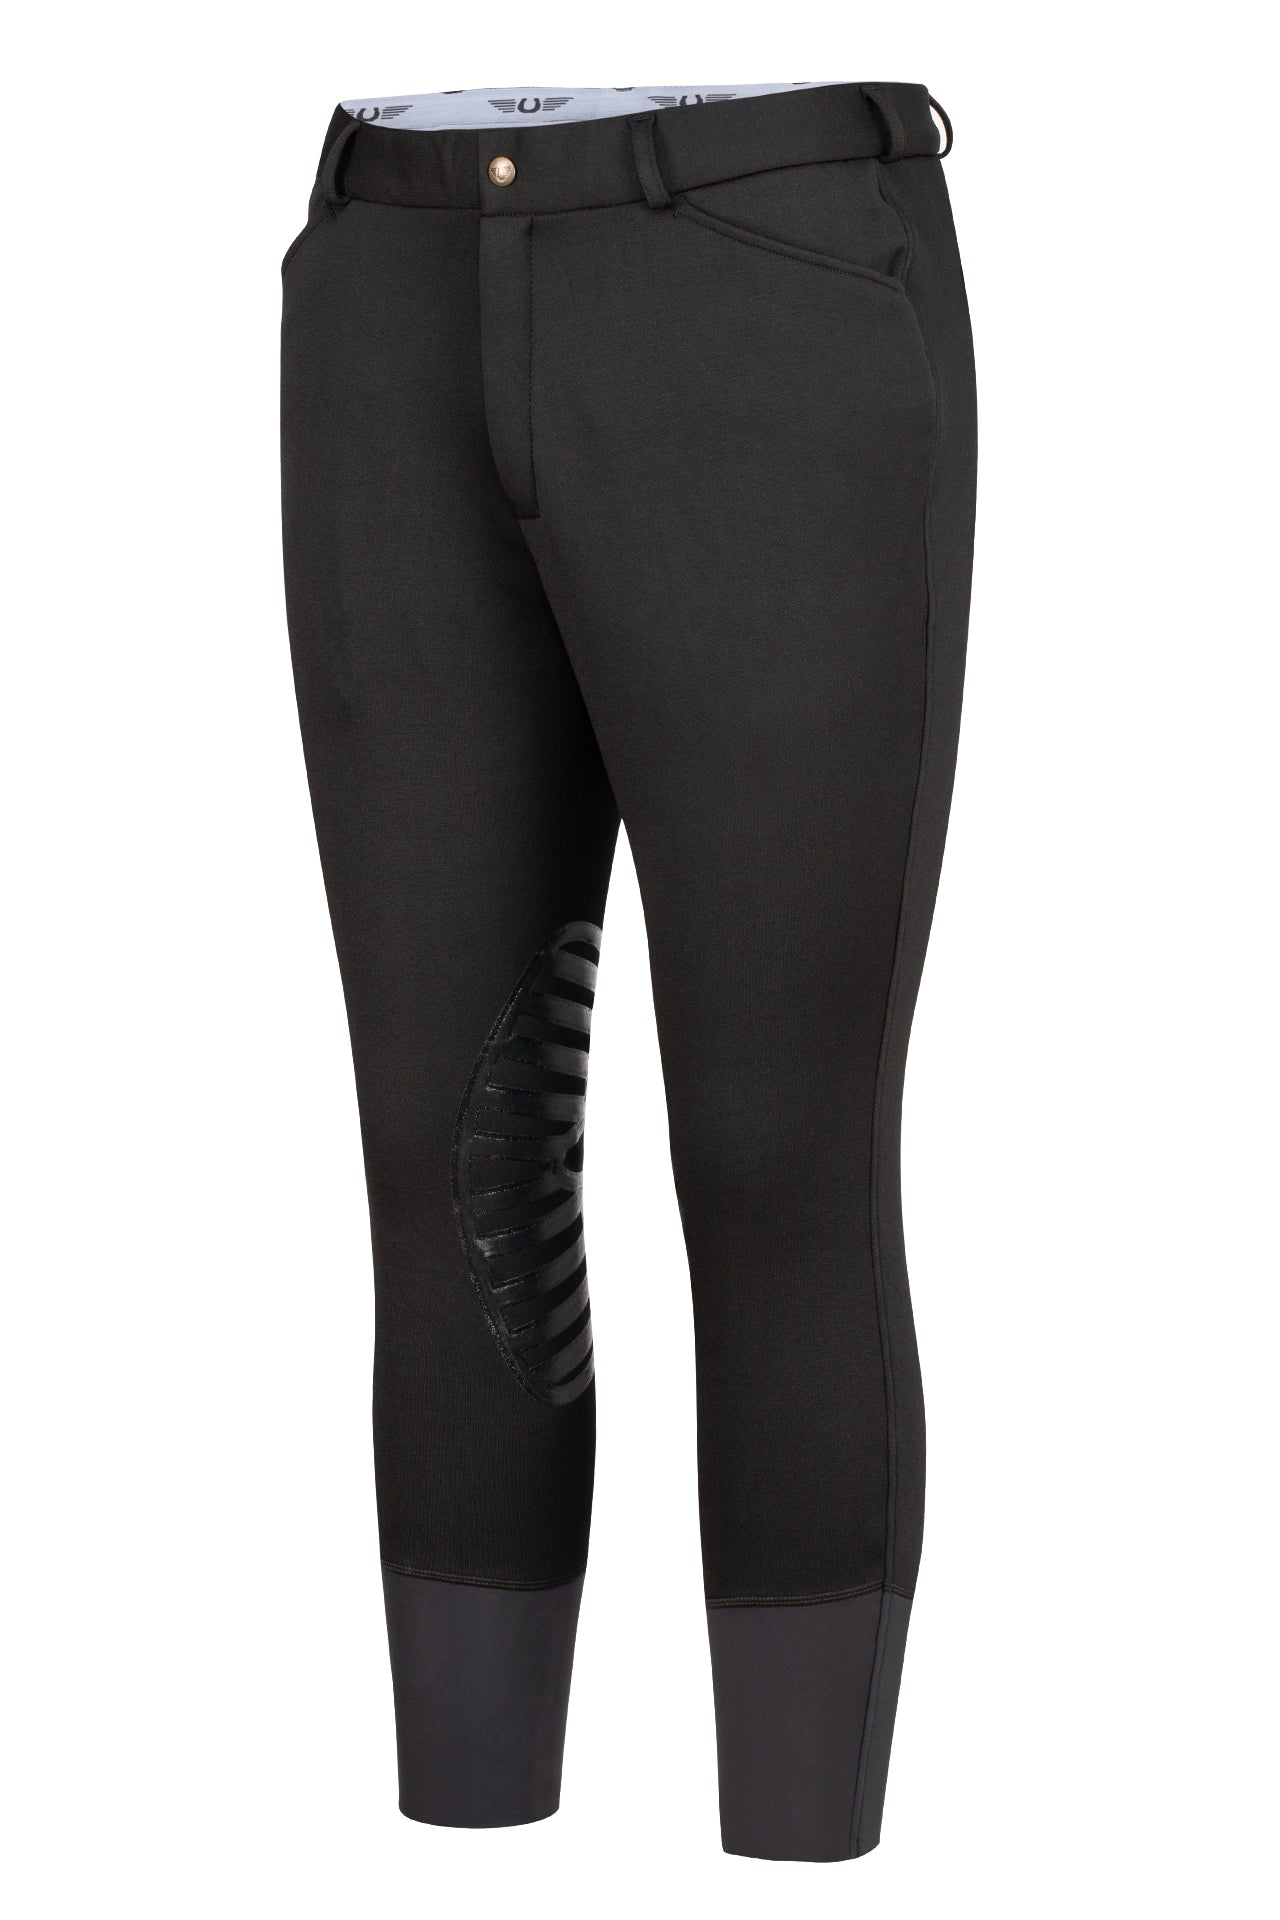 Men's Patrol Unifleece Breeches